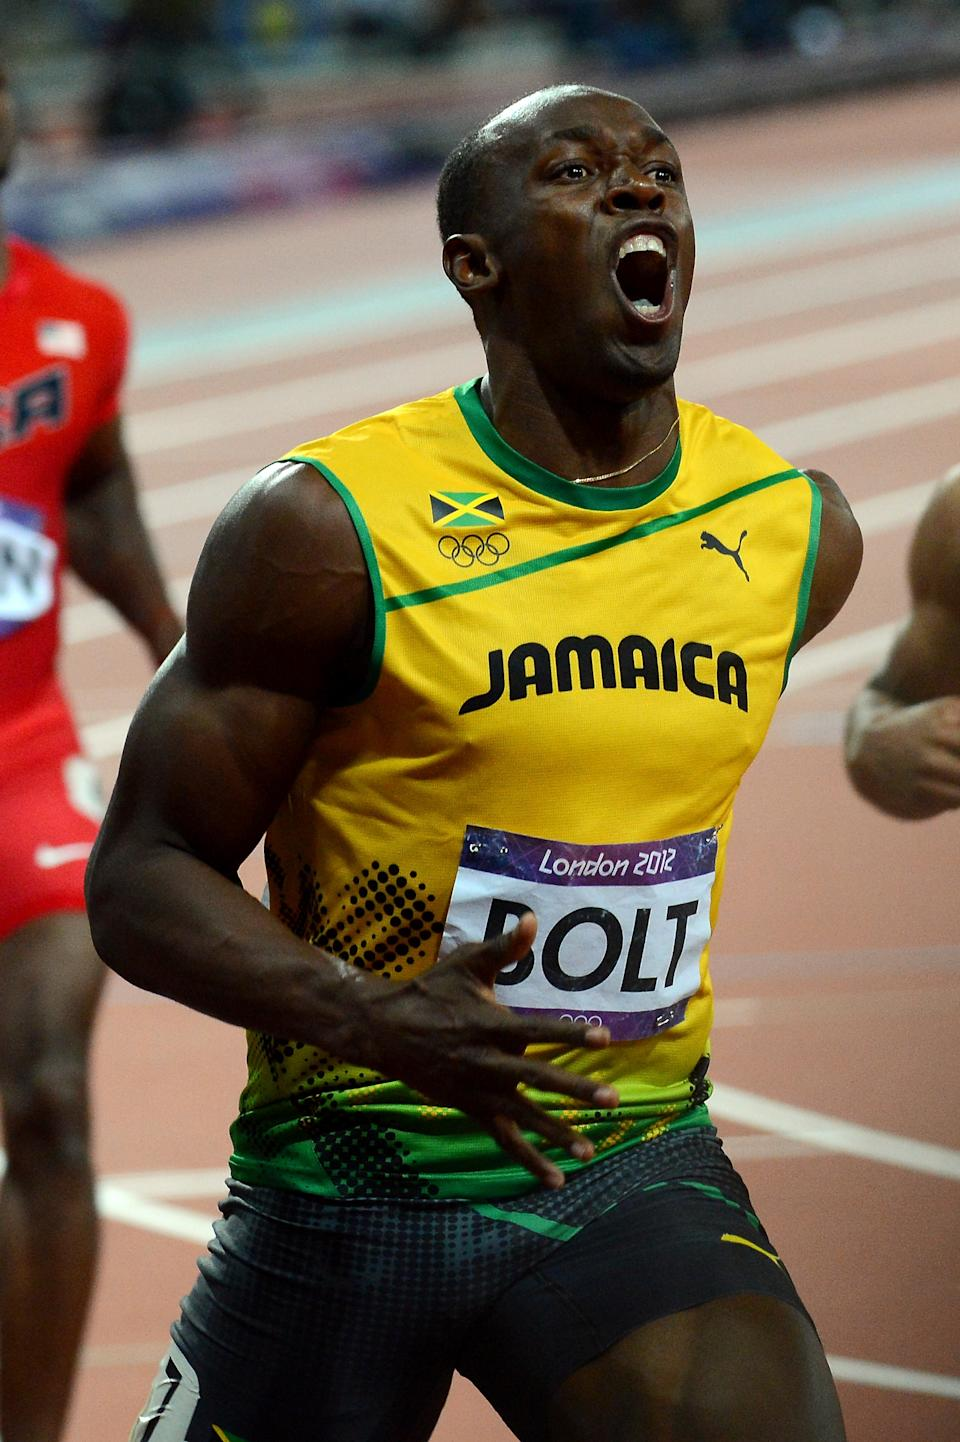 Usain Bolt of Jamaica celebrates after crossing the finish line to win the gold medal in the Men's 100m Final on Day 9 of the London 2012 Olympic Games at the Olympic Stadium on August 5, 2012 in London, England. (Photo by Shaun Botterill/Getty Images)